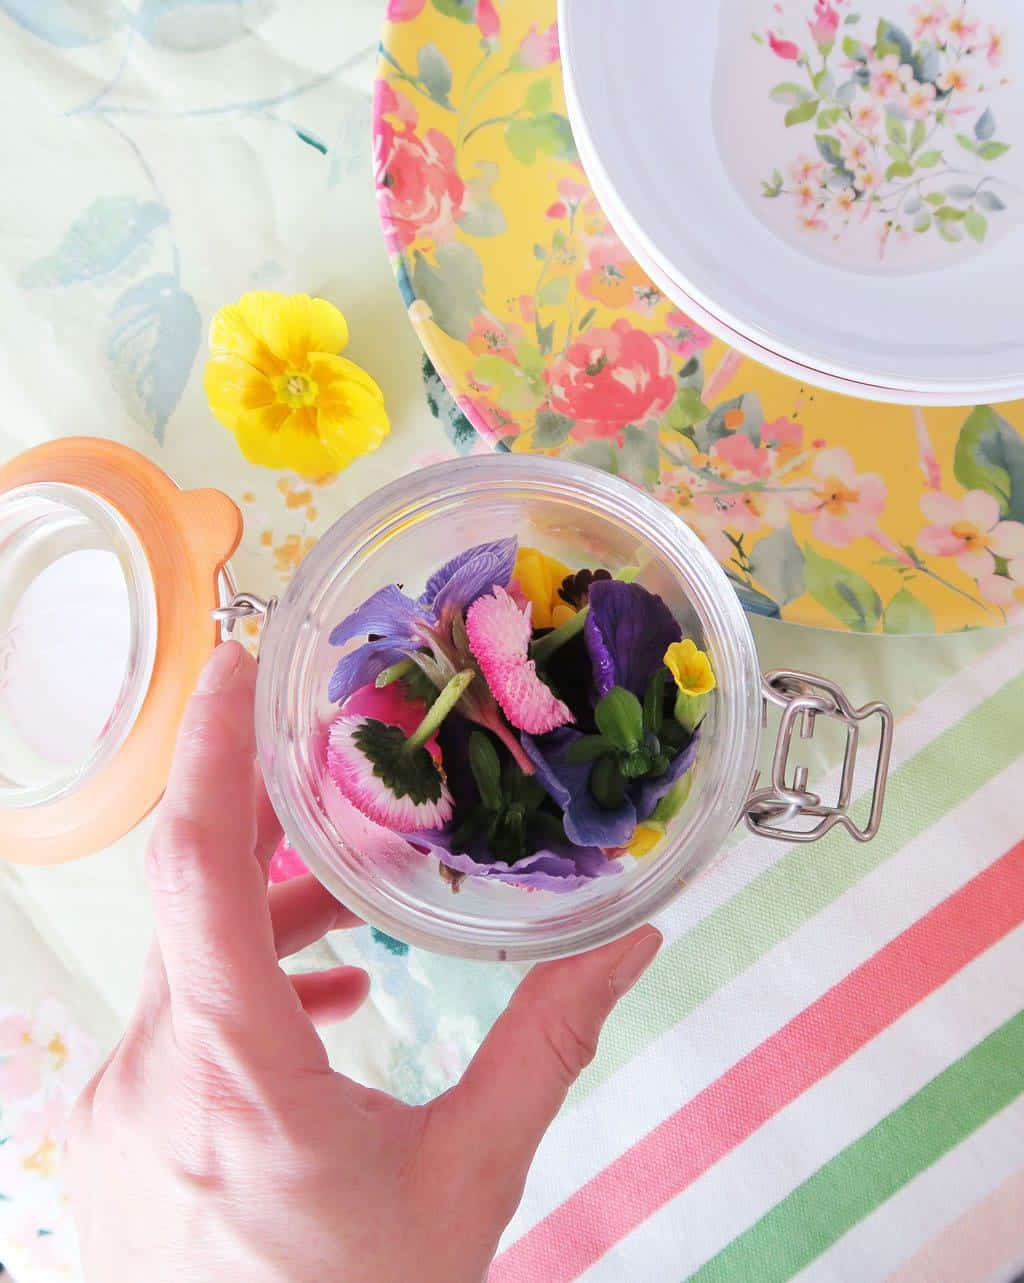 Edible flowers from Delicately Edible plus Spring Florals Tableware from Laura Ashley